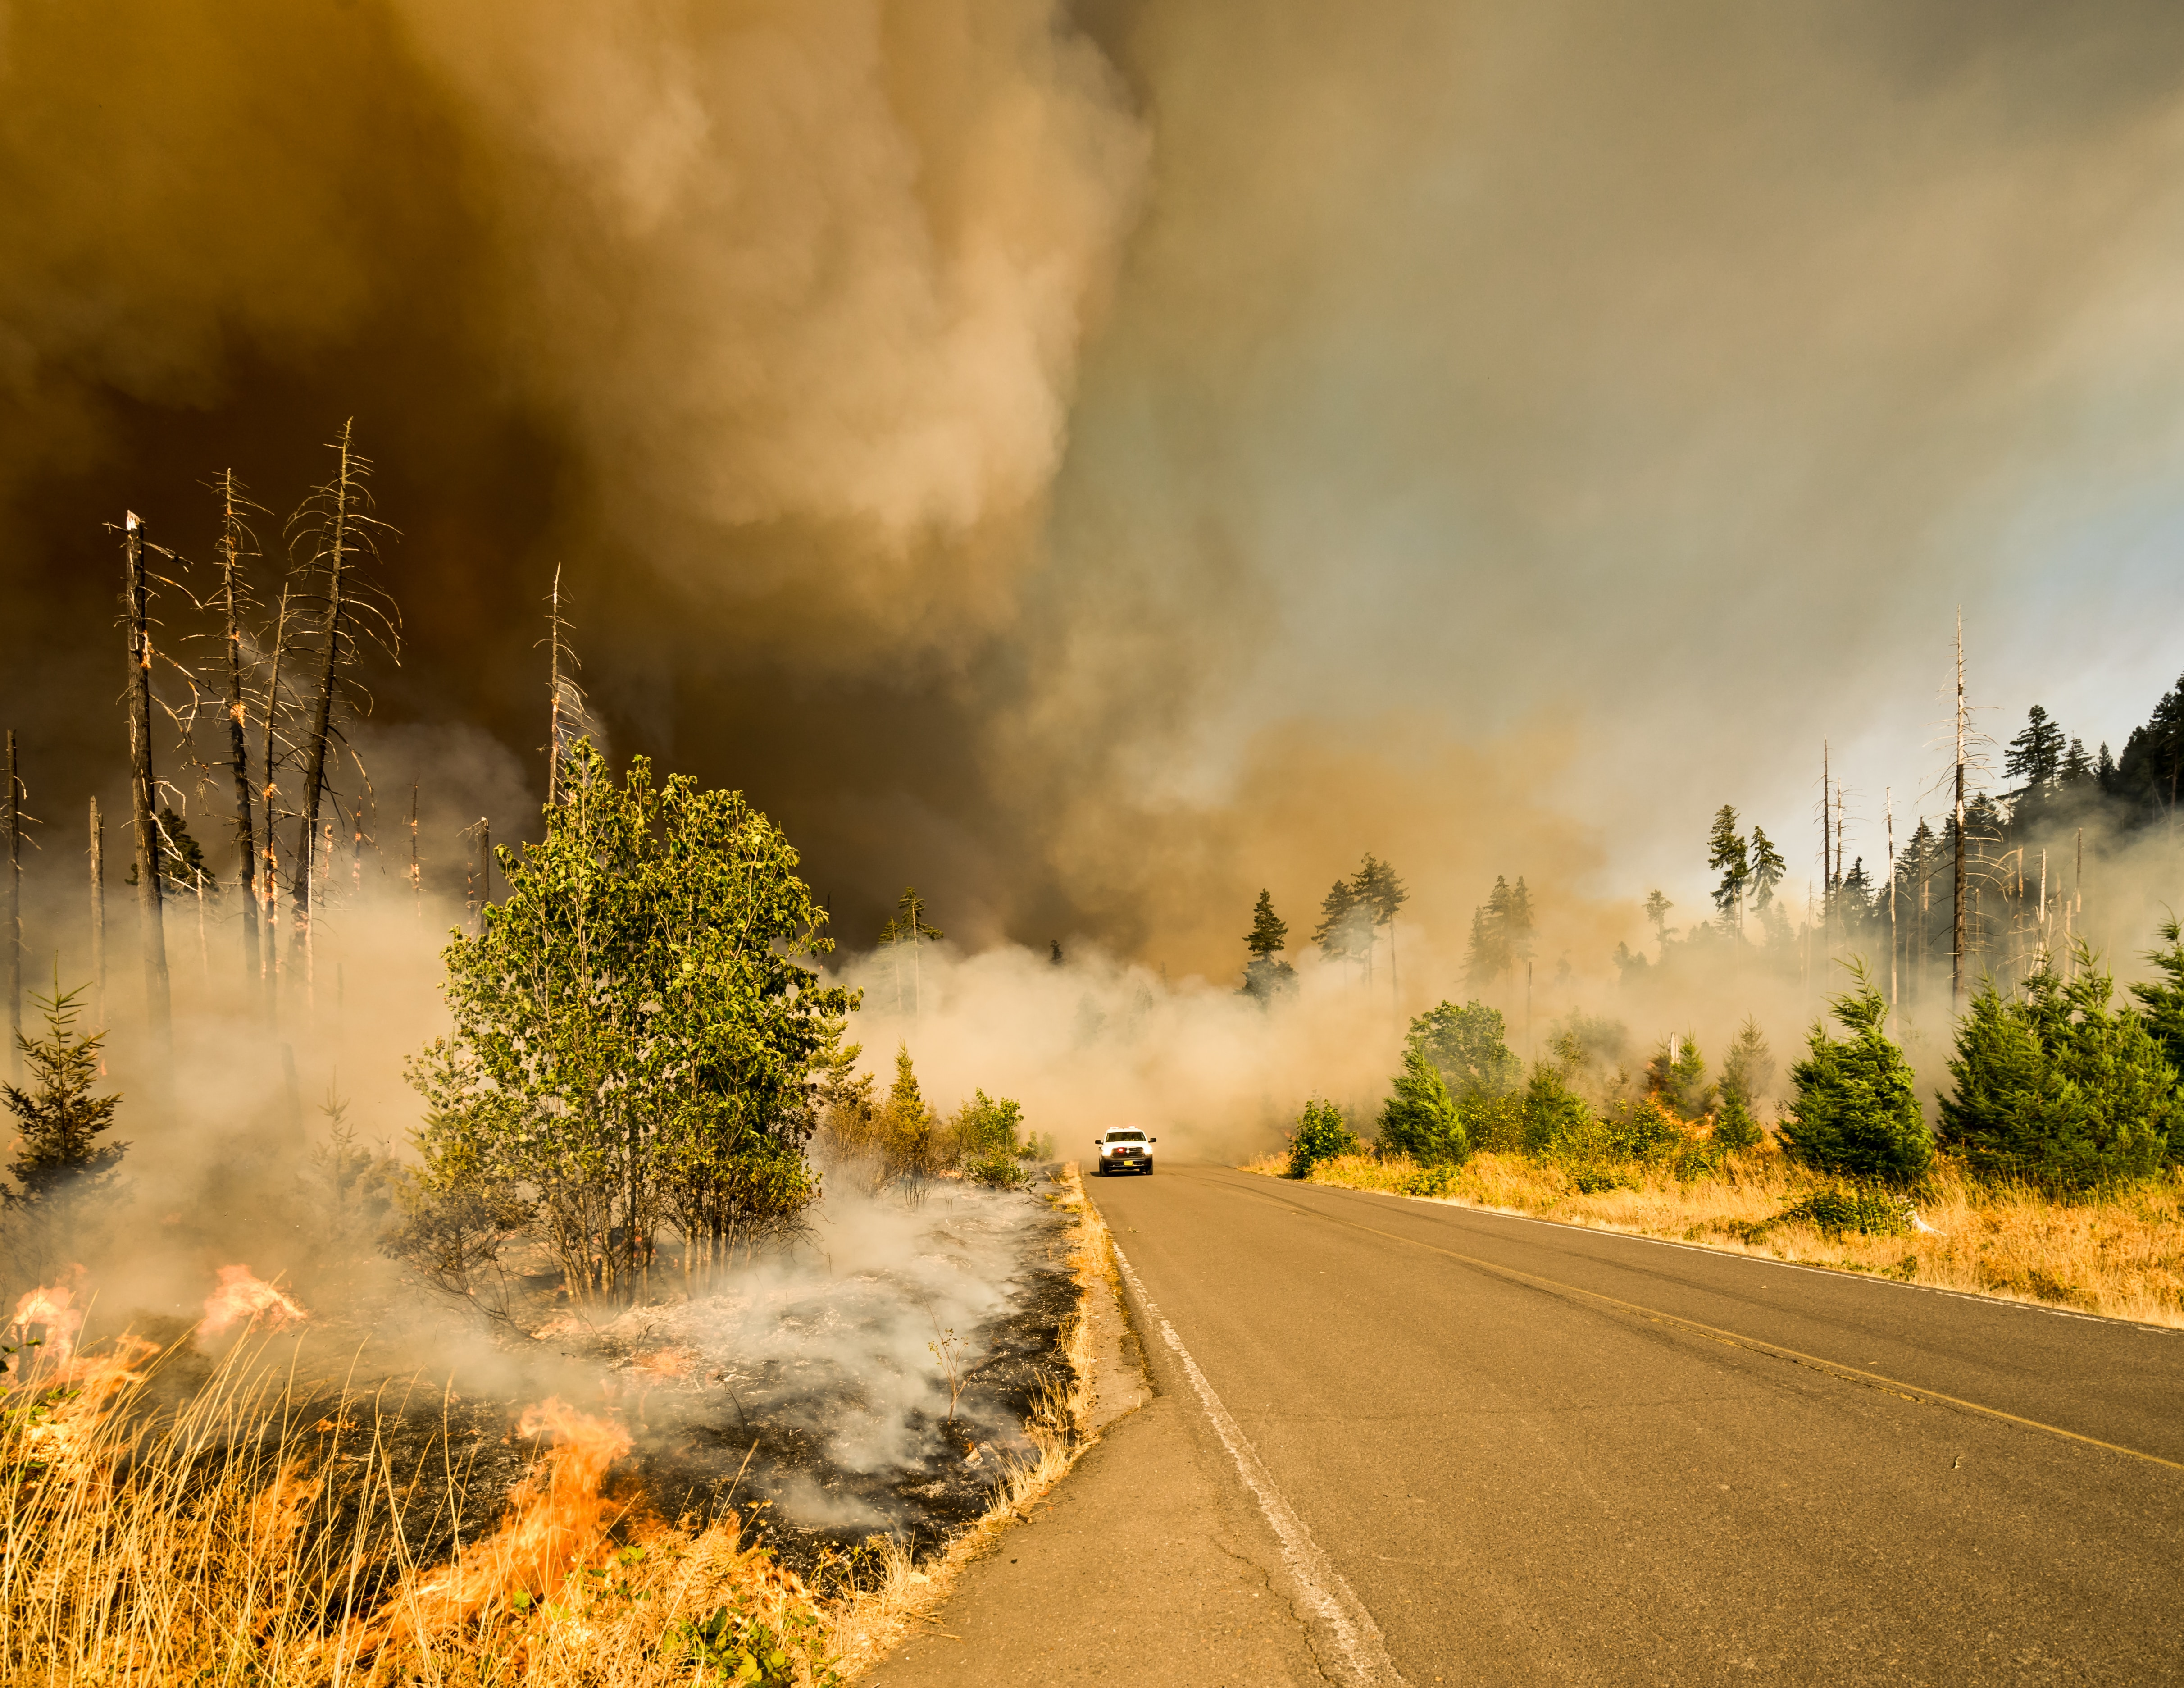 Wildfire Photo Over Road